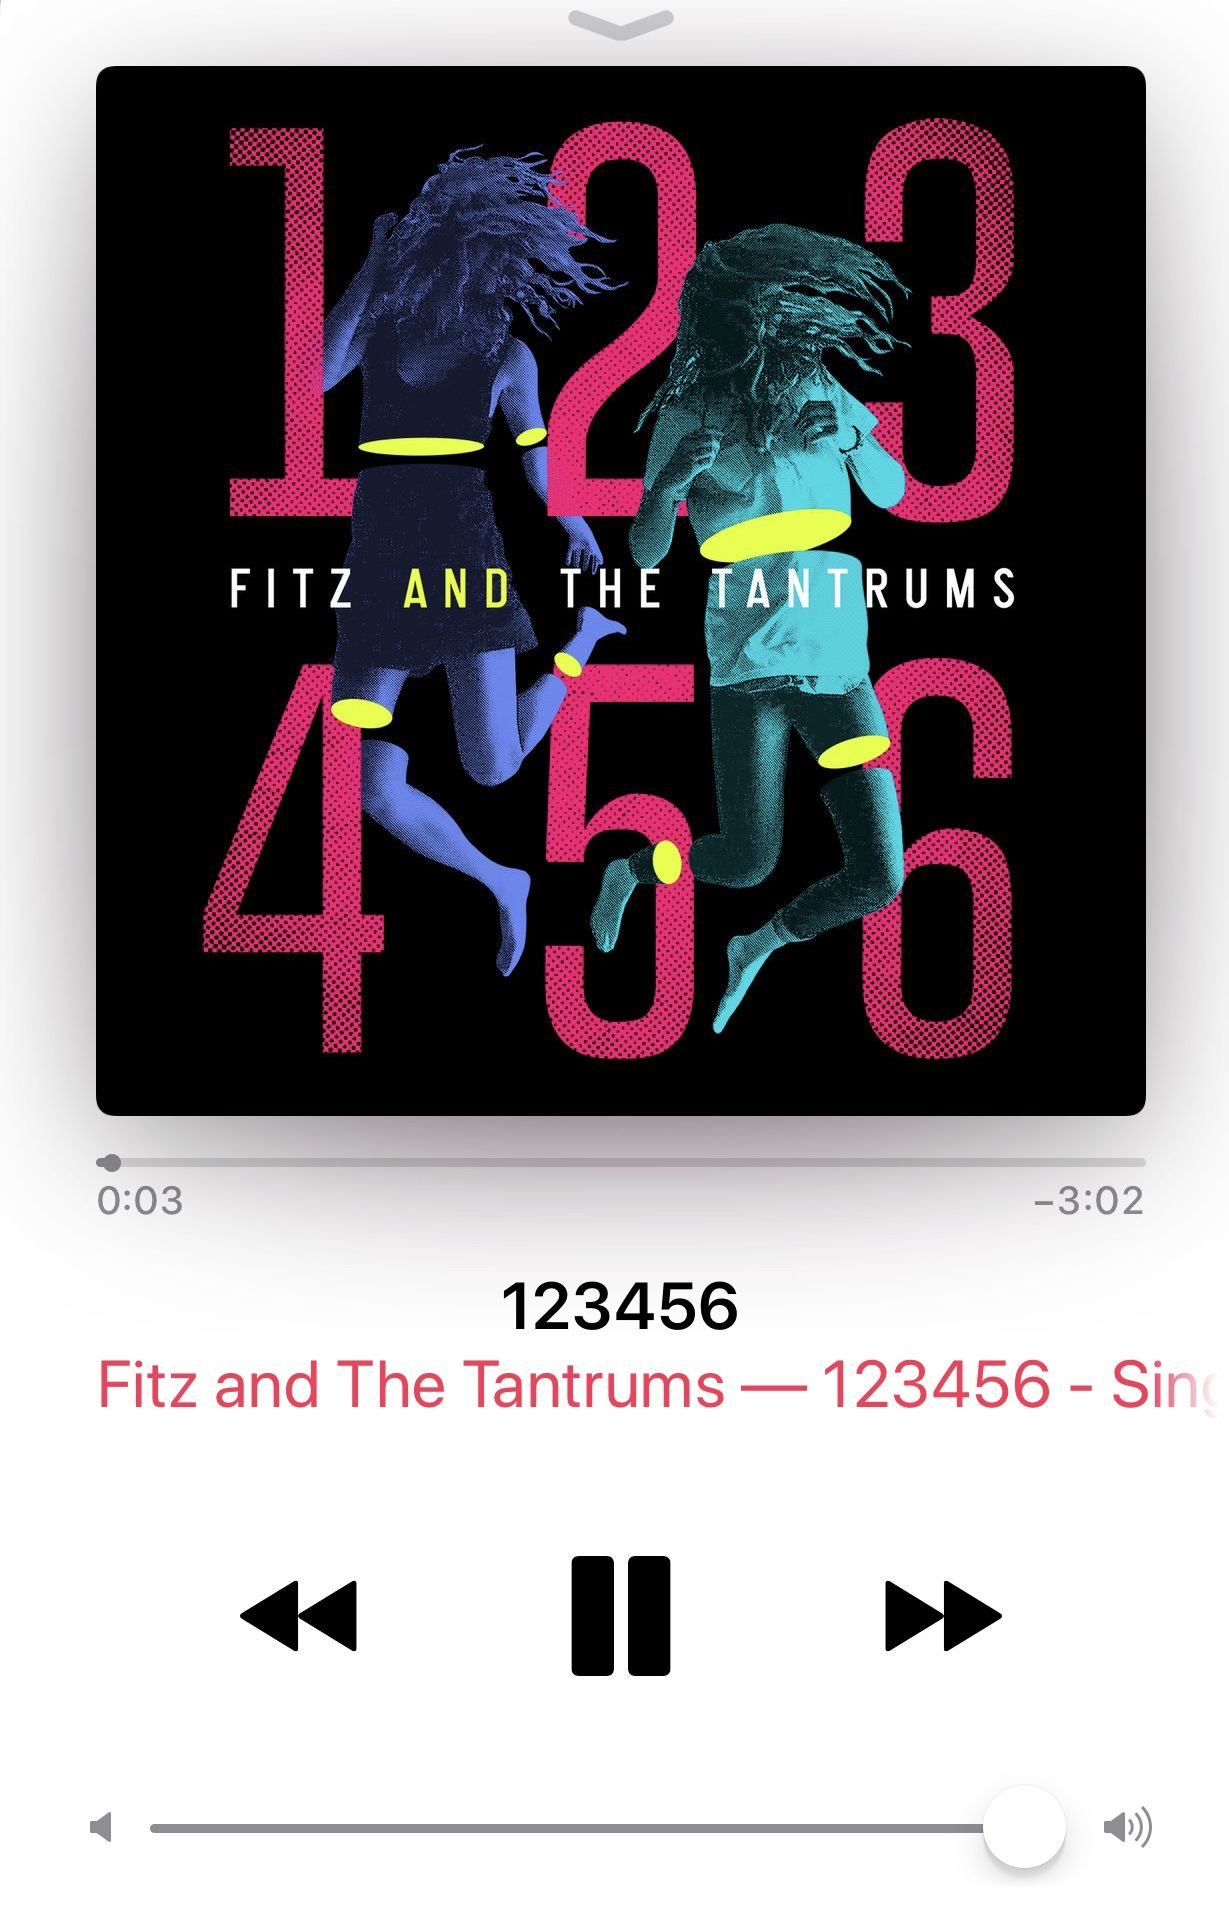 123456 Fitz and The Tantrums Darth vader, Musicals, Mood